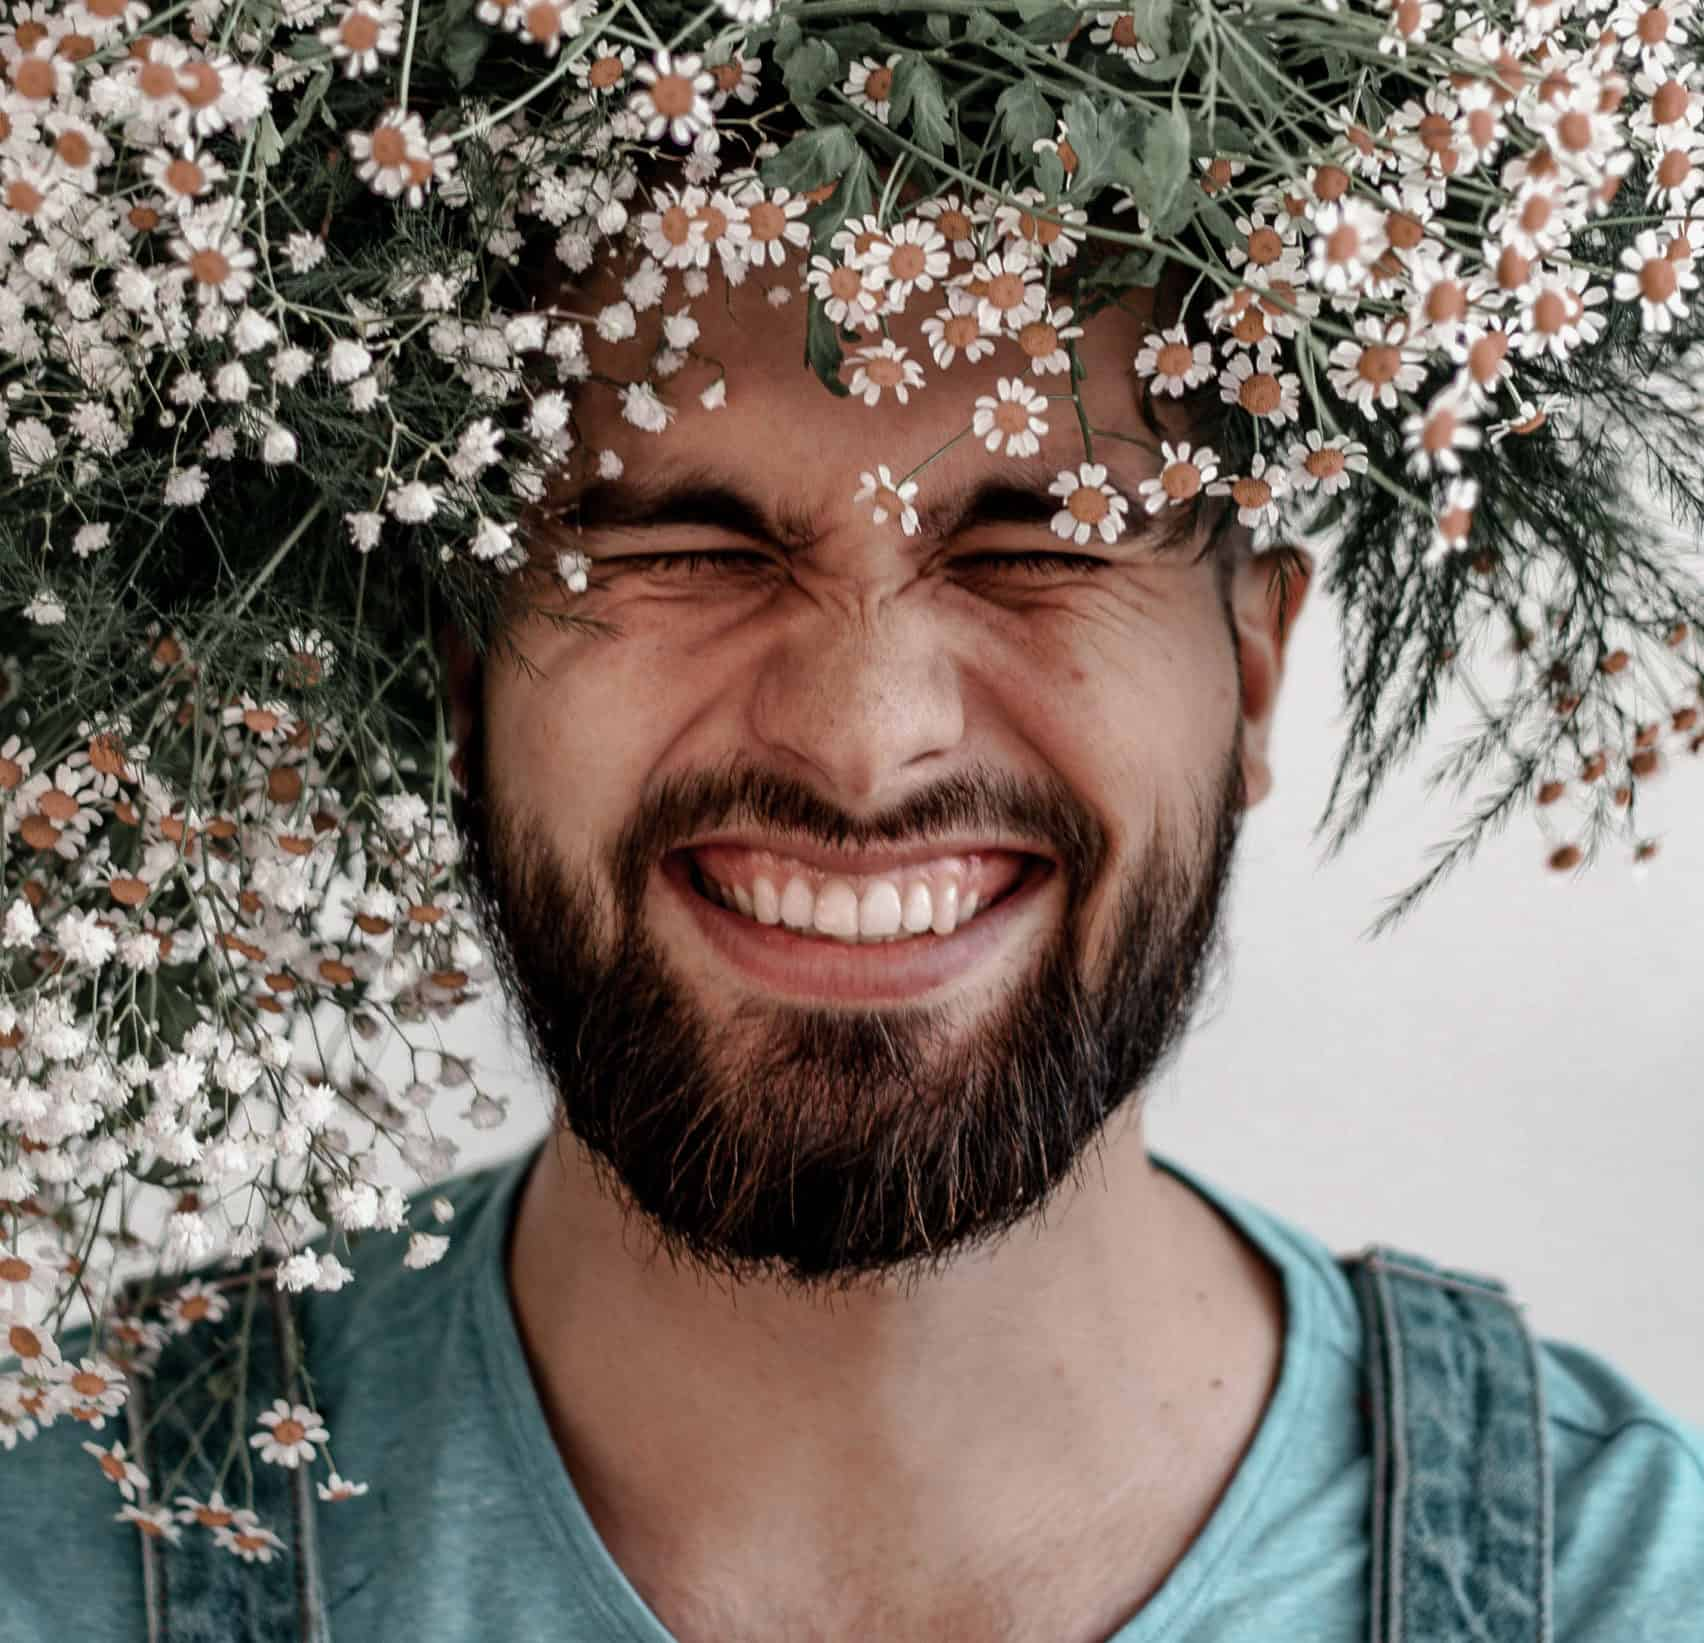 Man Smiling with Flowers